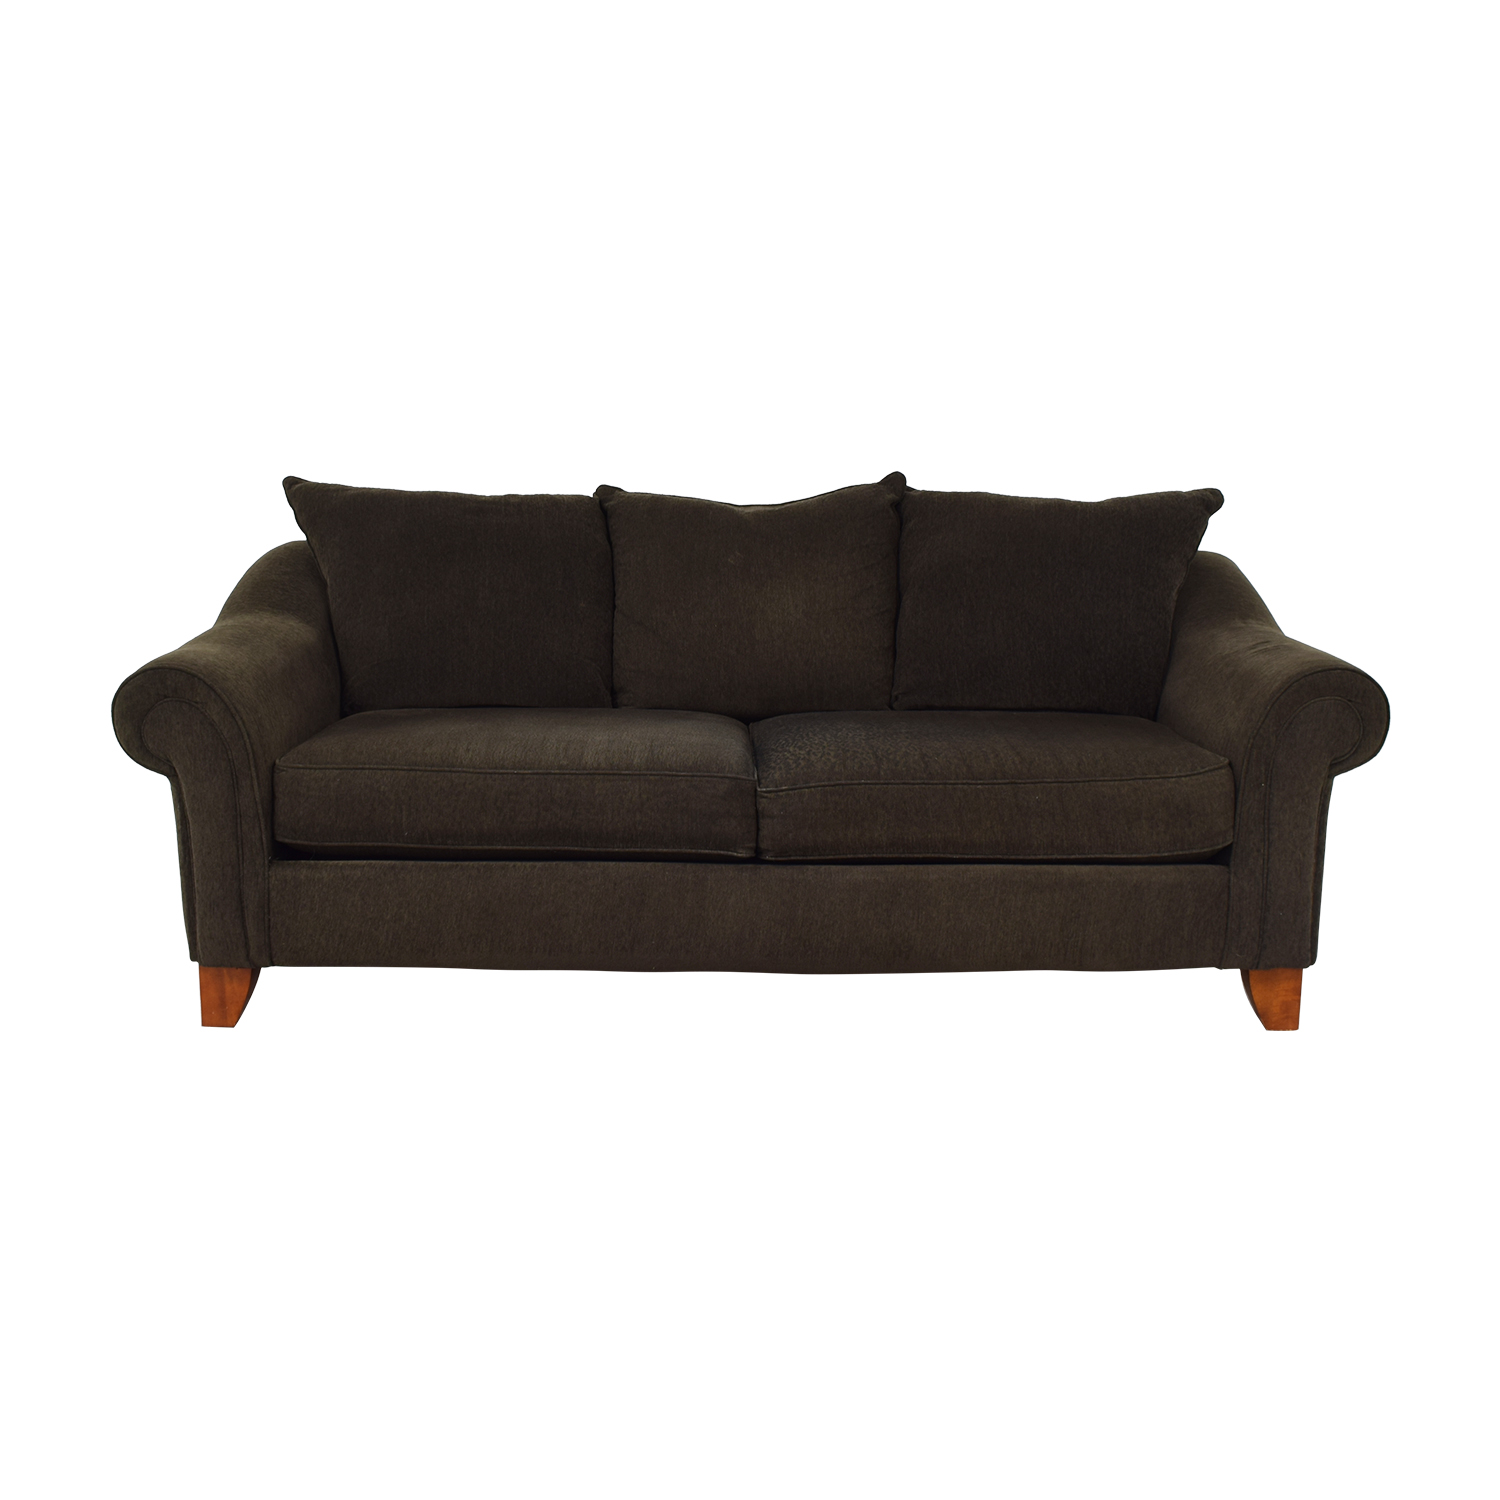 Raymour & Flanigan Raymour & Flanigan Two Cushion Sofa price